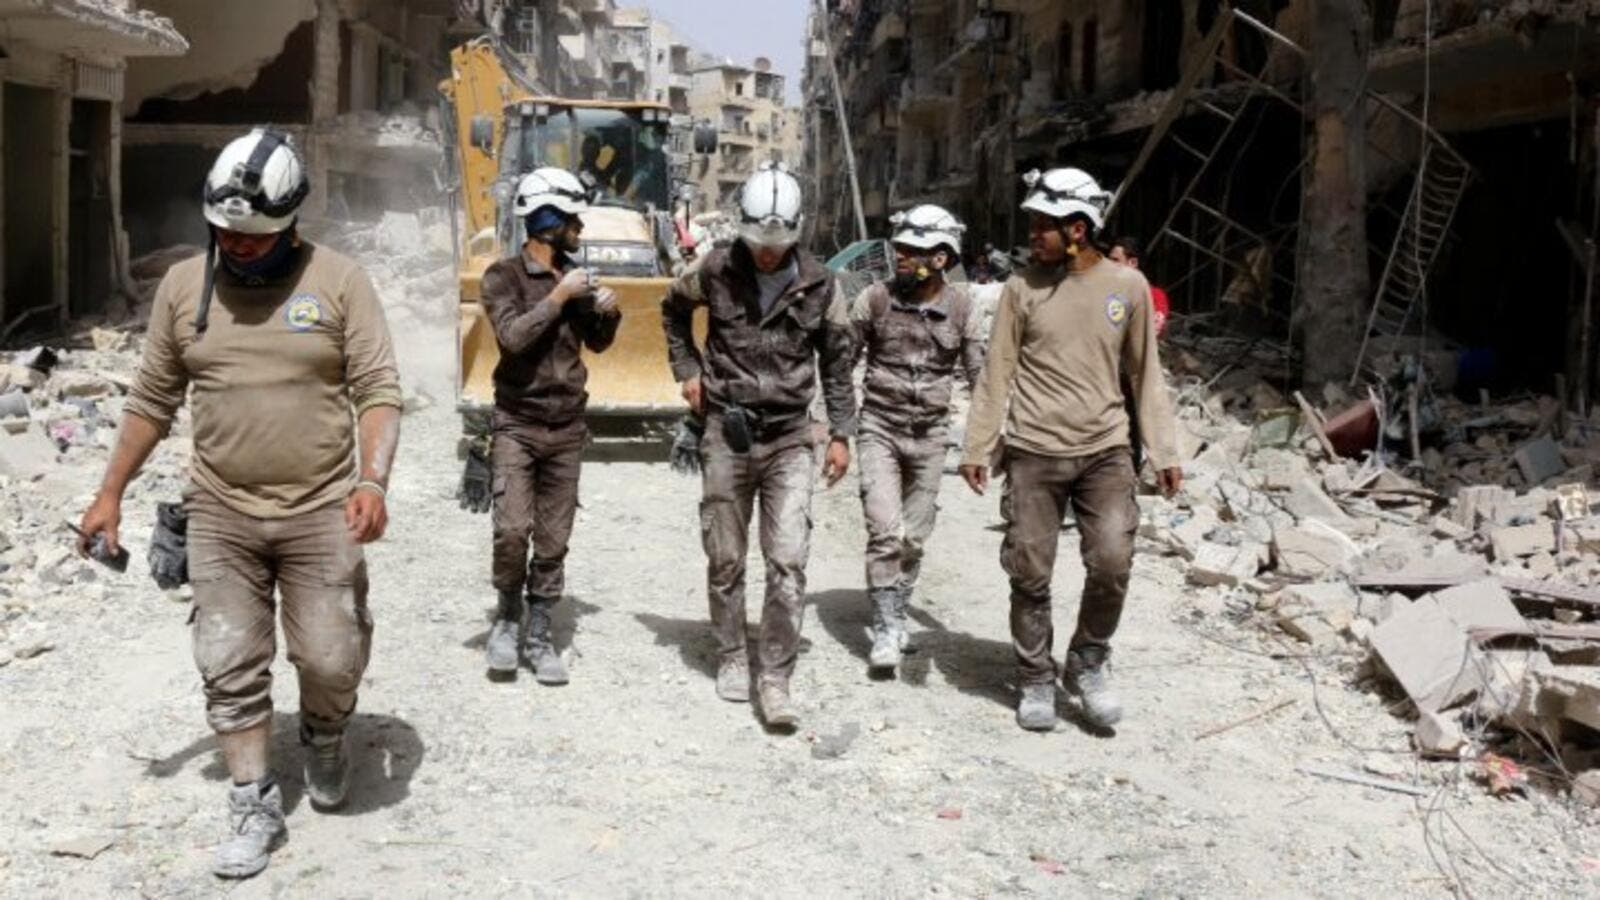 A group of White Helmets working in Aleppo (AFP/Thaer Mohammed)